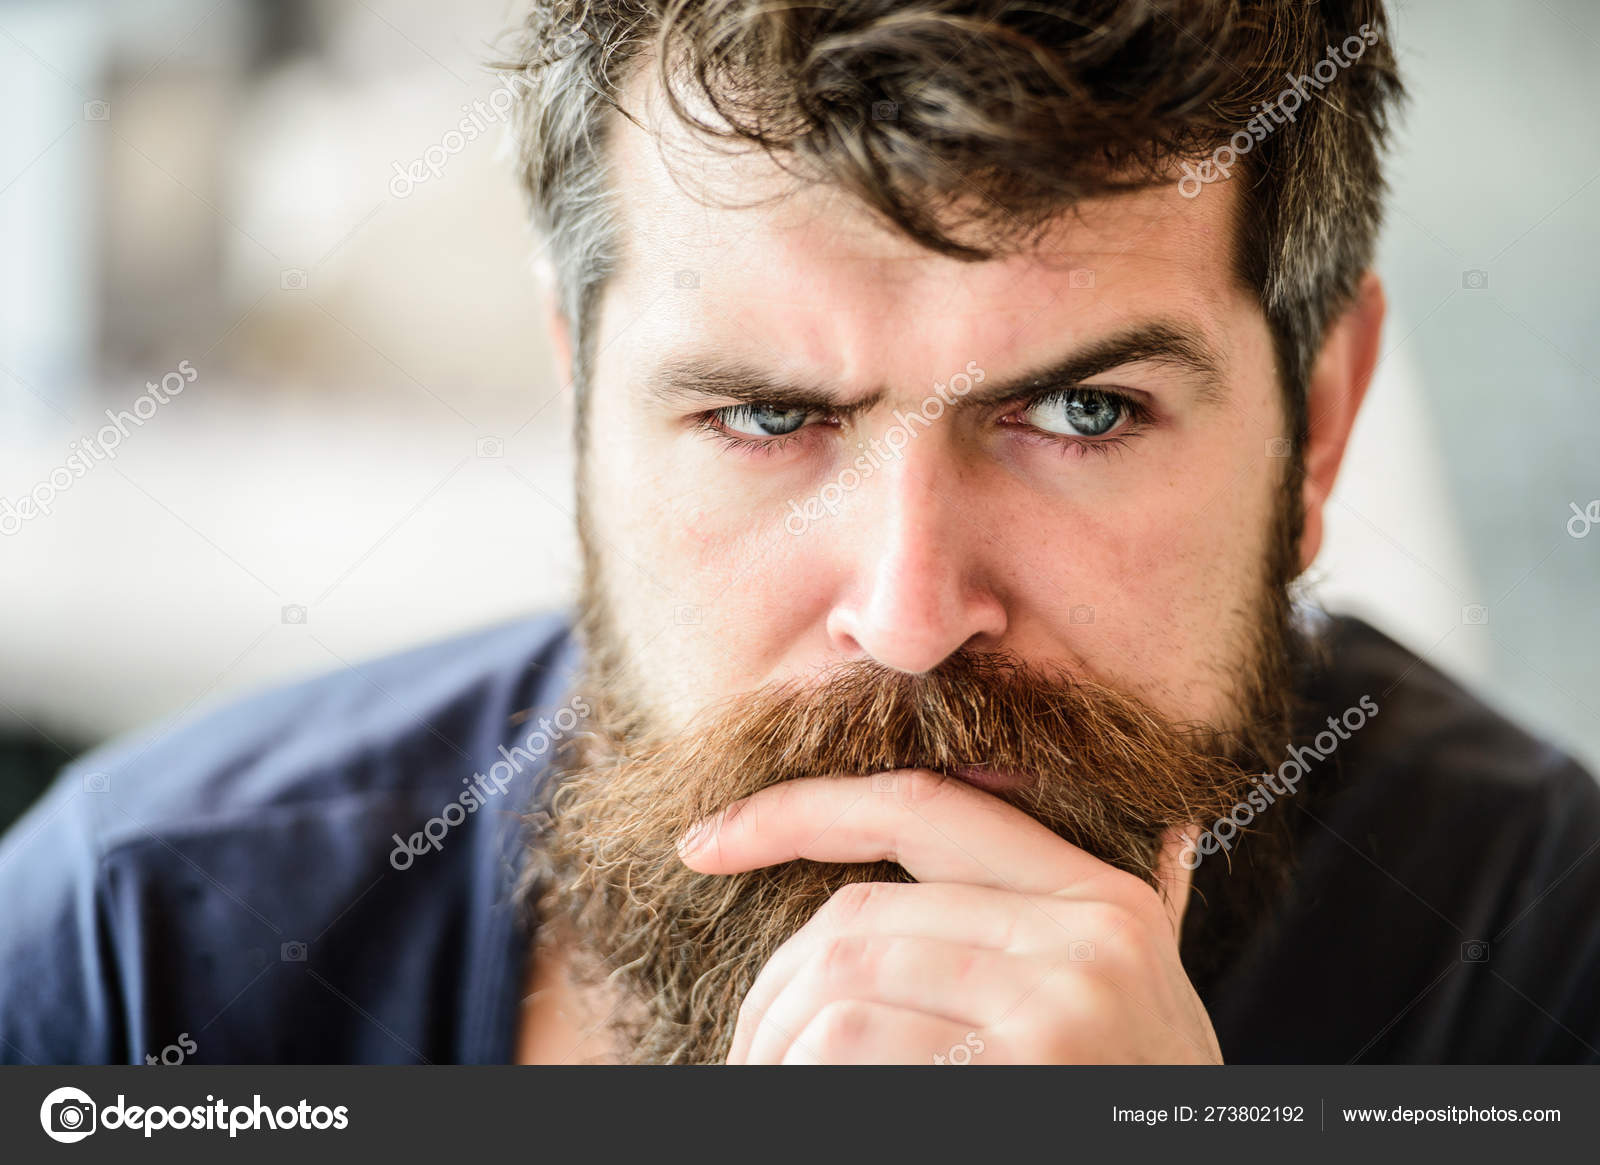 Bearded man feel loneliness. thoughtful man outdoor. Facial